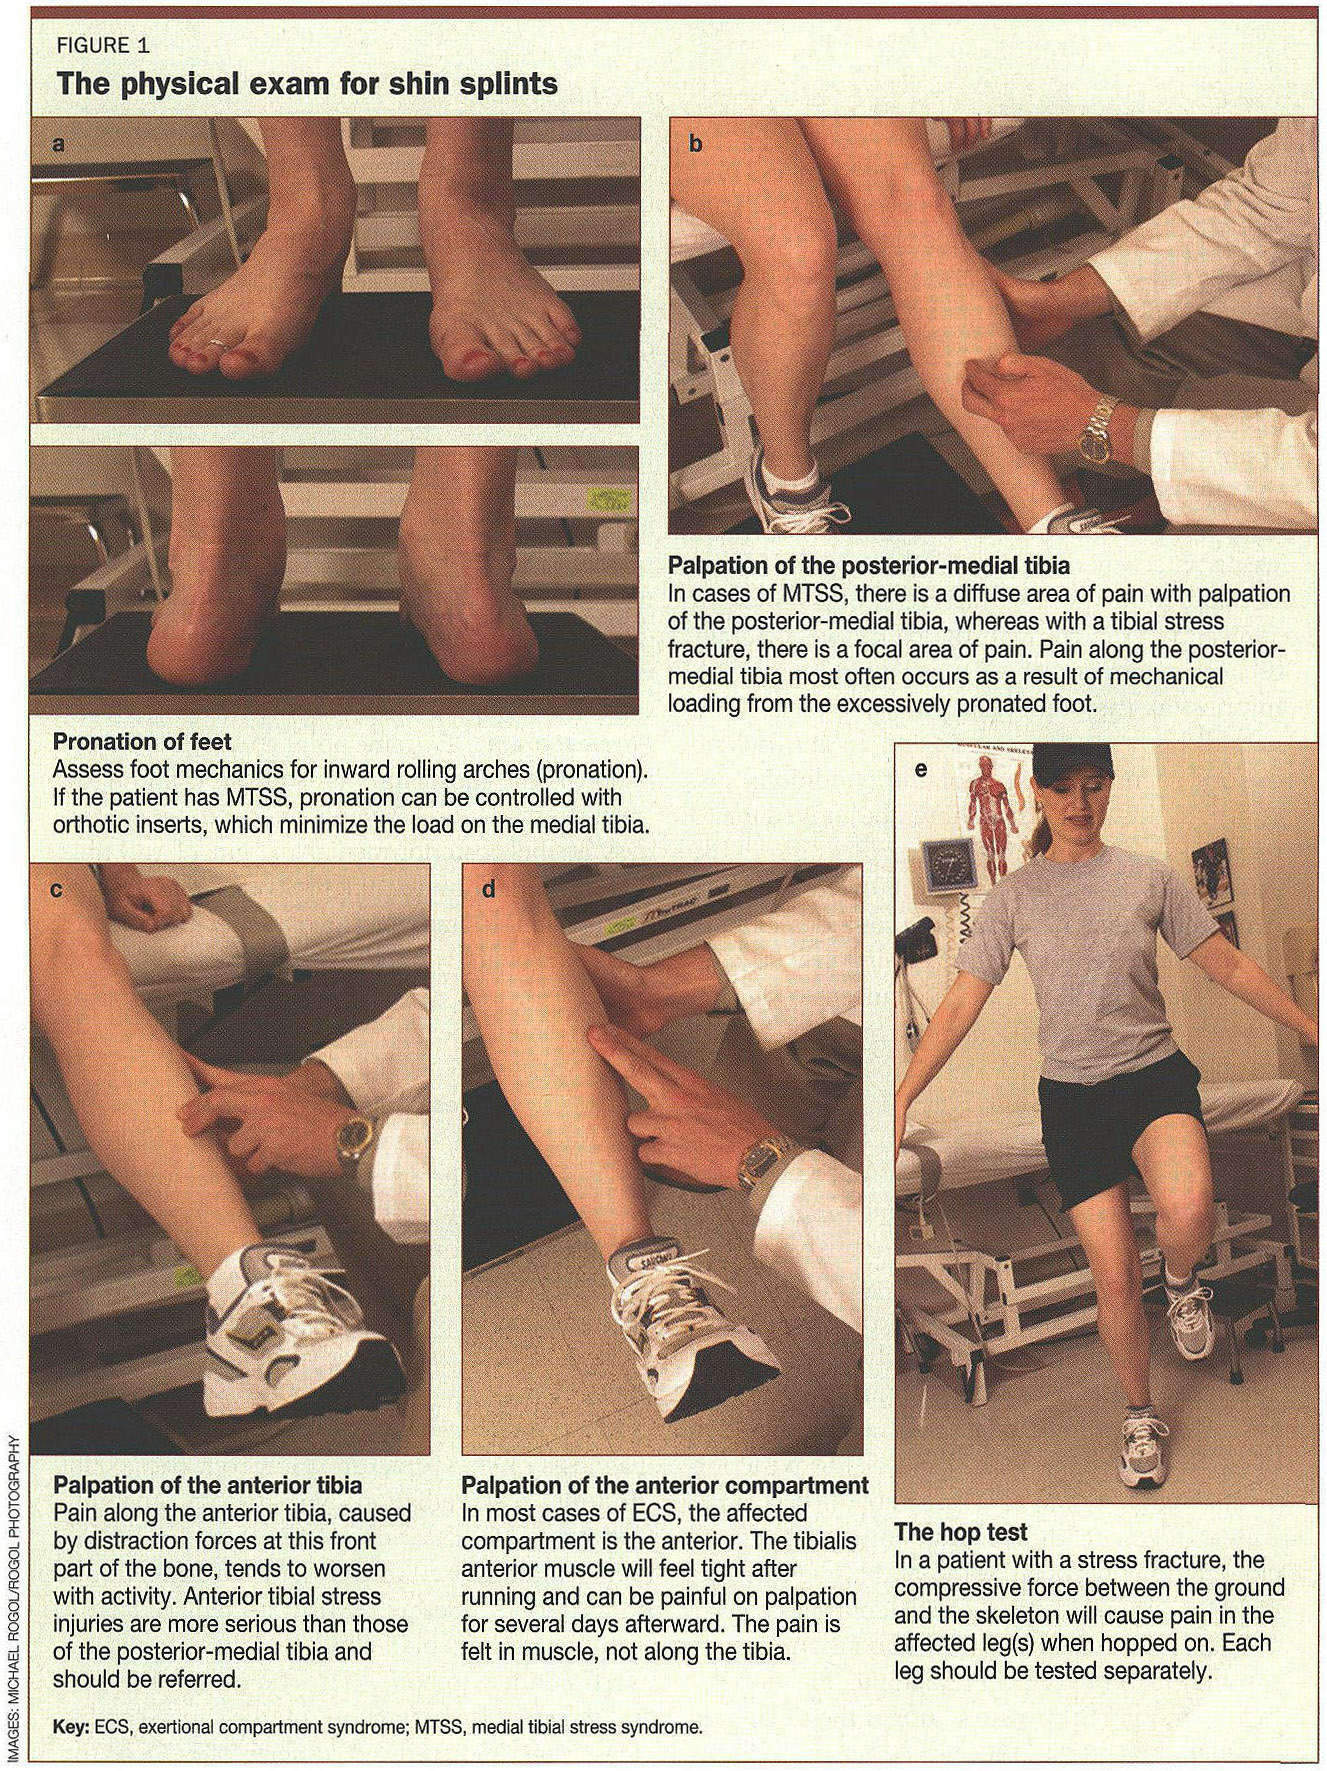 Gale Academic Onefile Document Adolescent Medicine Part 2 A Case Based Look At Shin Splints Tibial Stress Injuries And Exertional Compartment Syndrome Are Among The Entities That Can Cause Shin Pain